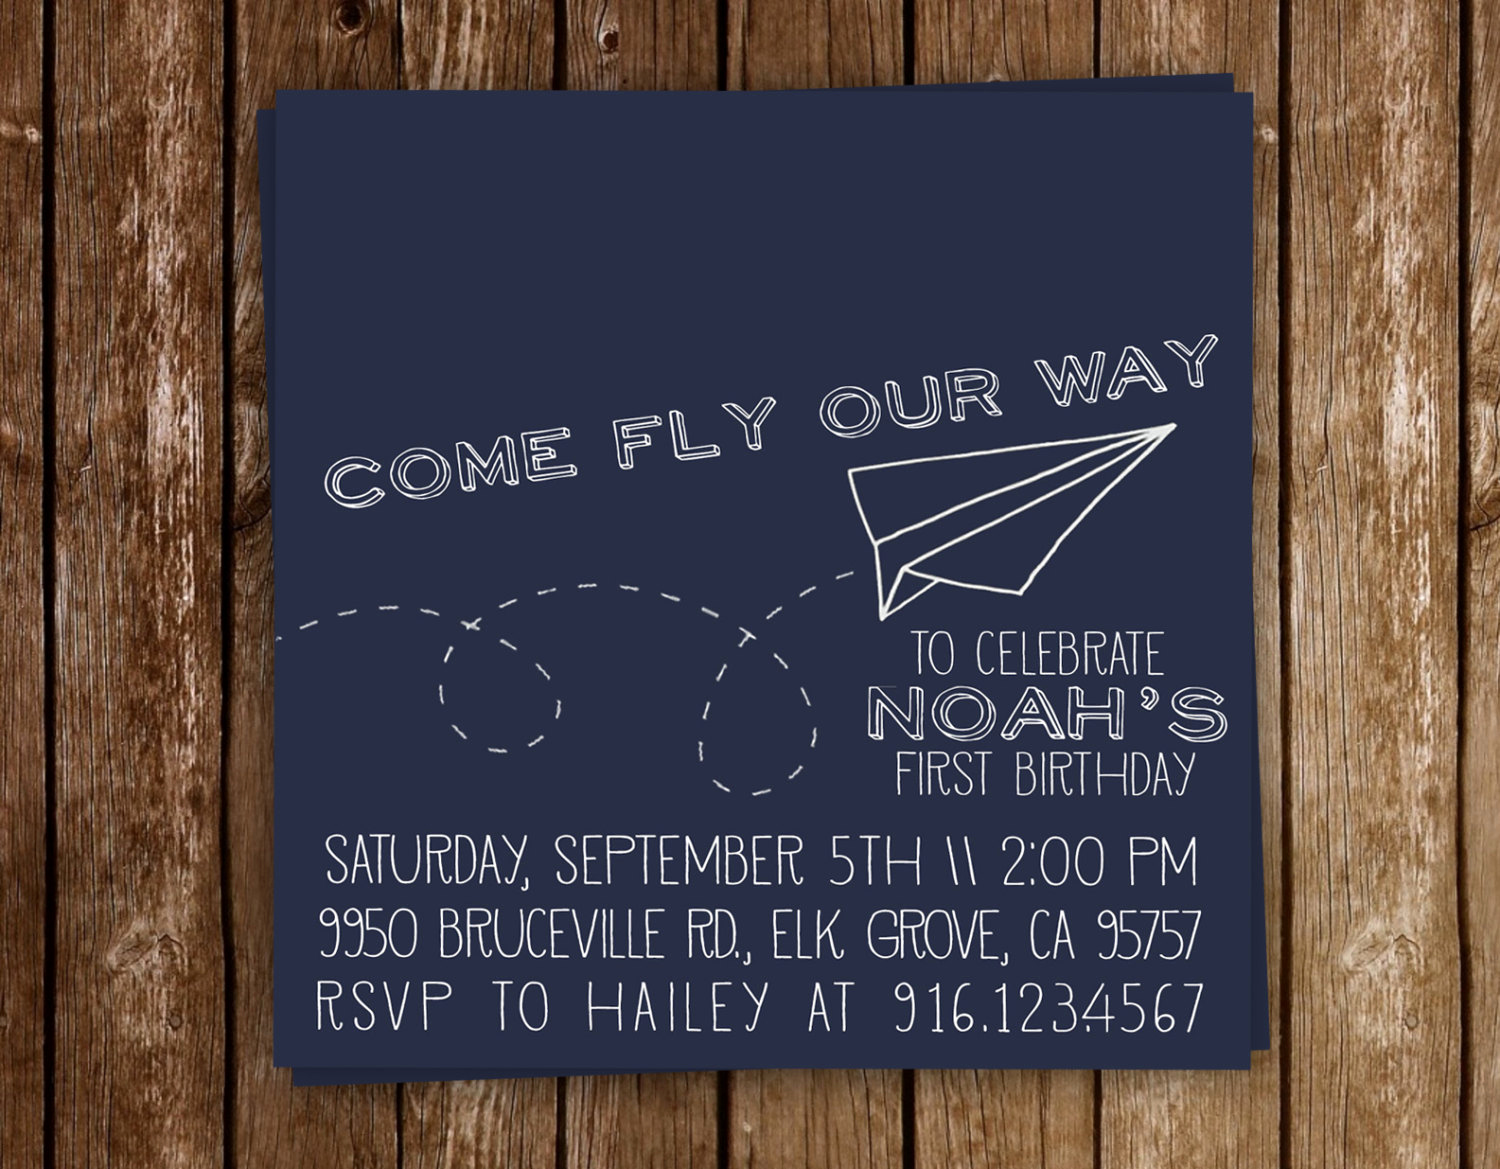 Paper Airplane Invitation Template Inspirational Vintage Paper Airplane Birthday Party Invitation Printable